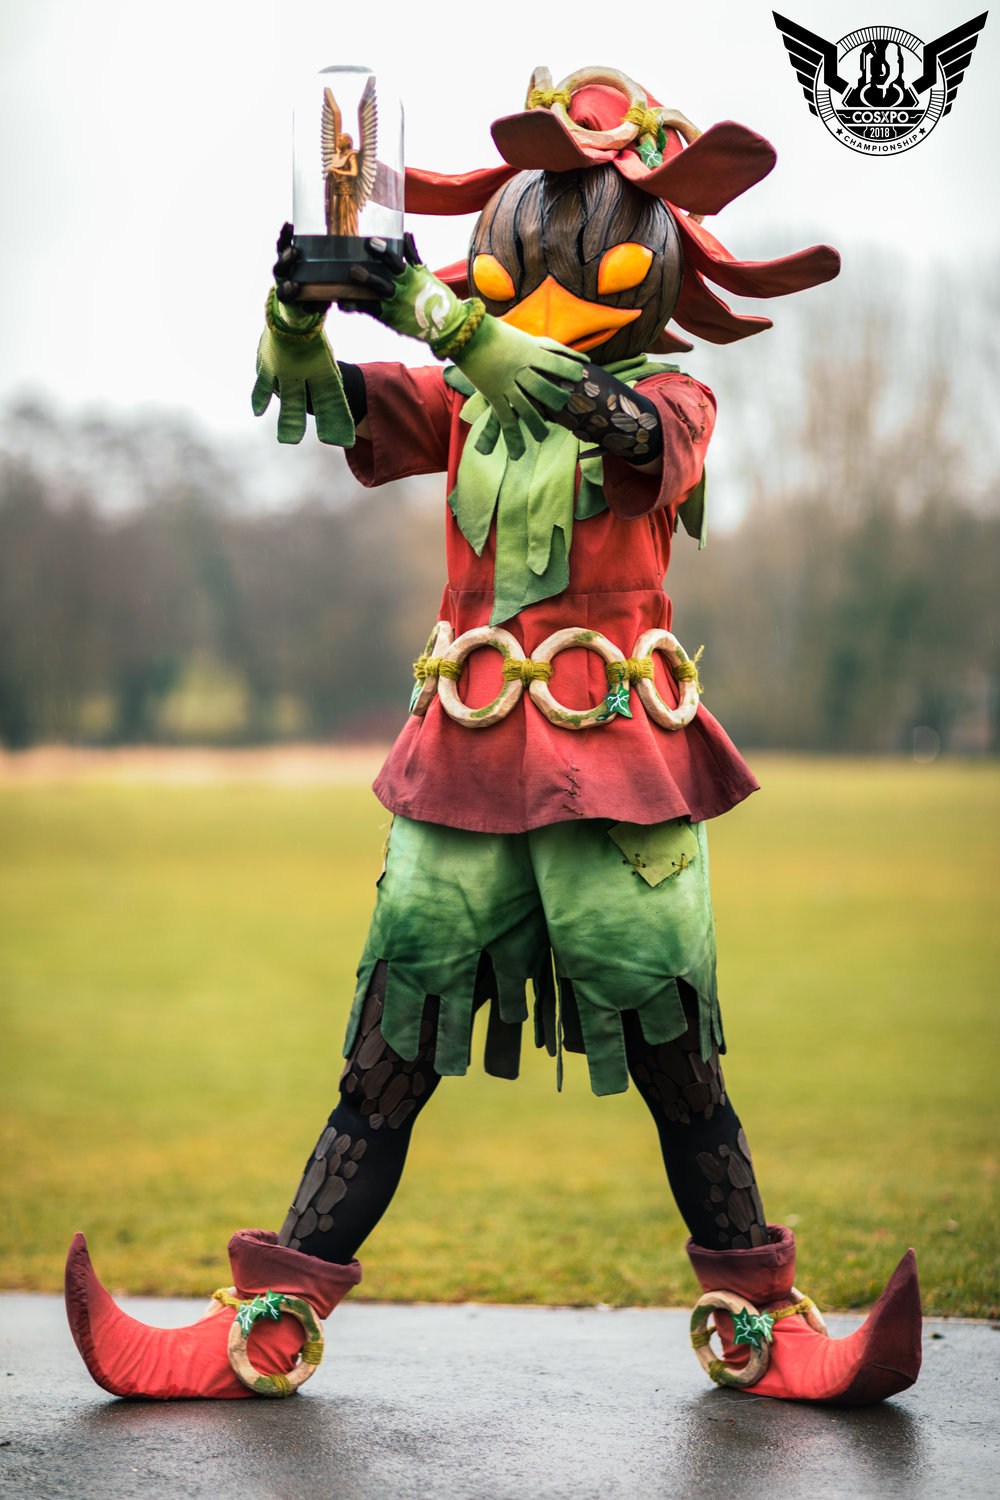 CosXPo 2018 Championship Winner. Skull Kid from Legend of Zelda by Kaldorei Cosplay